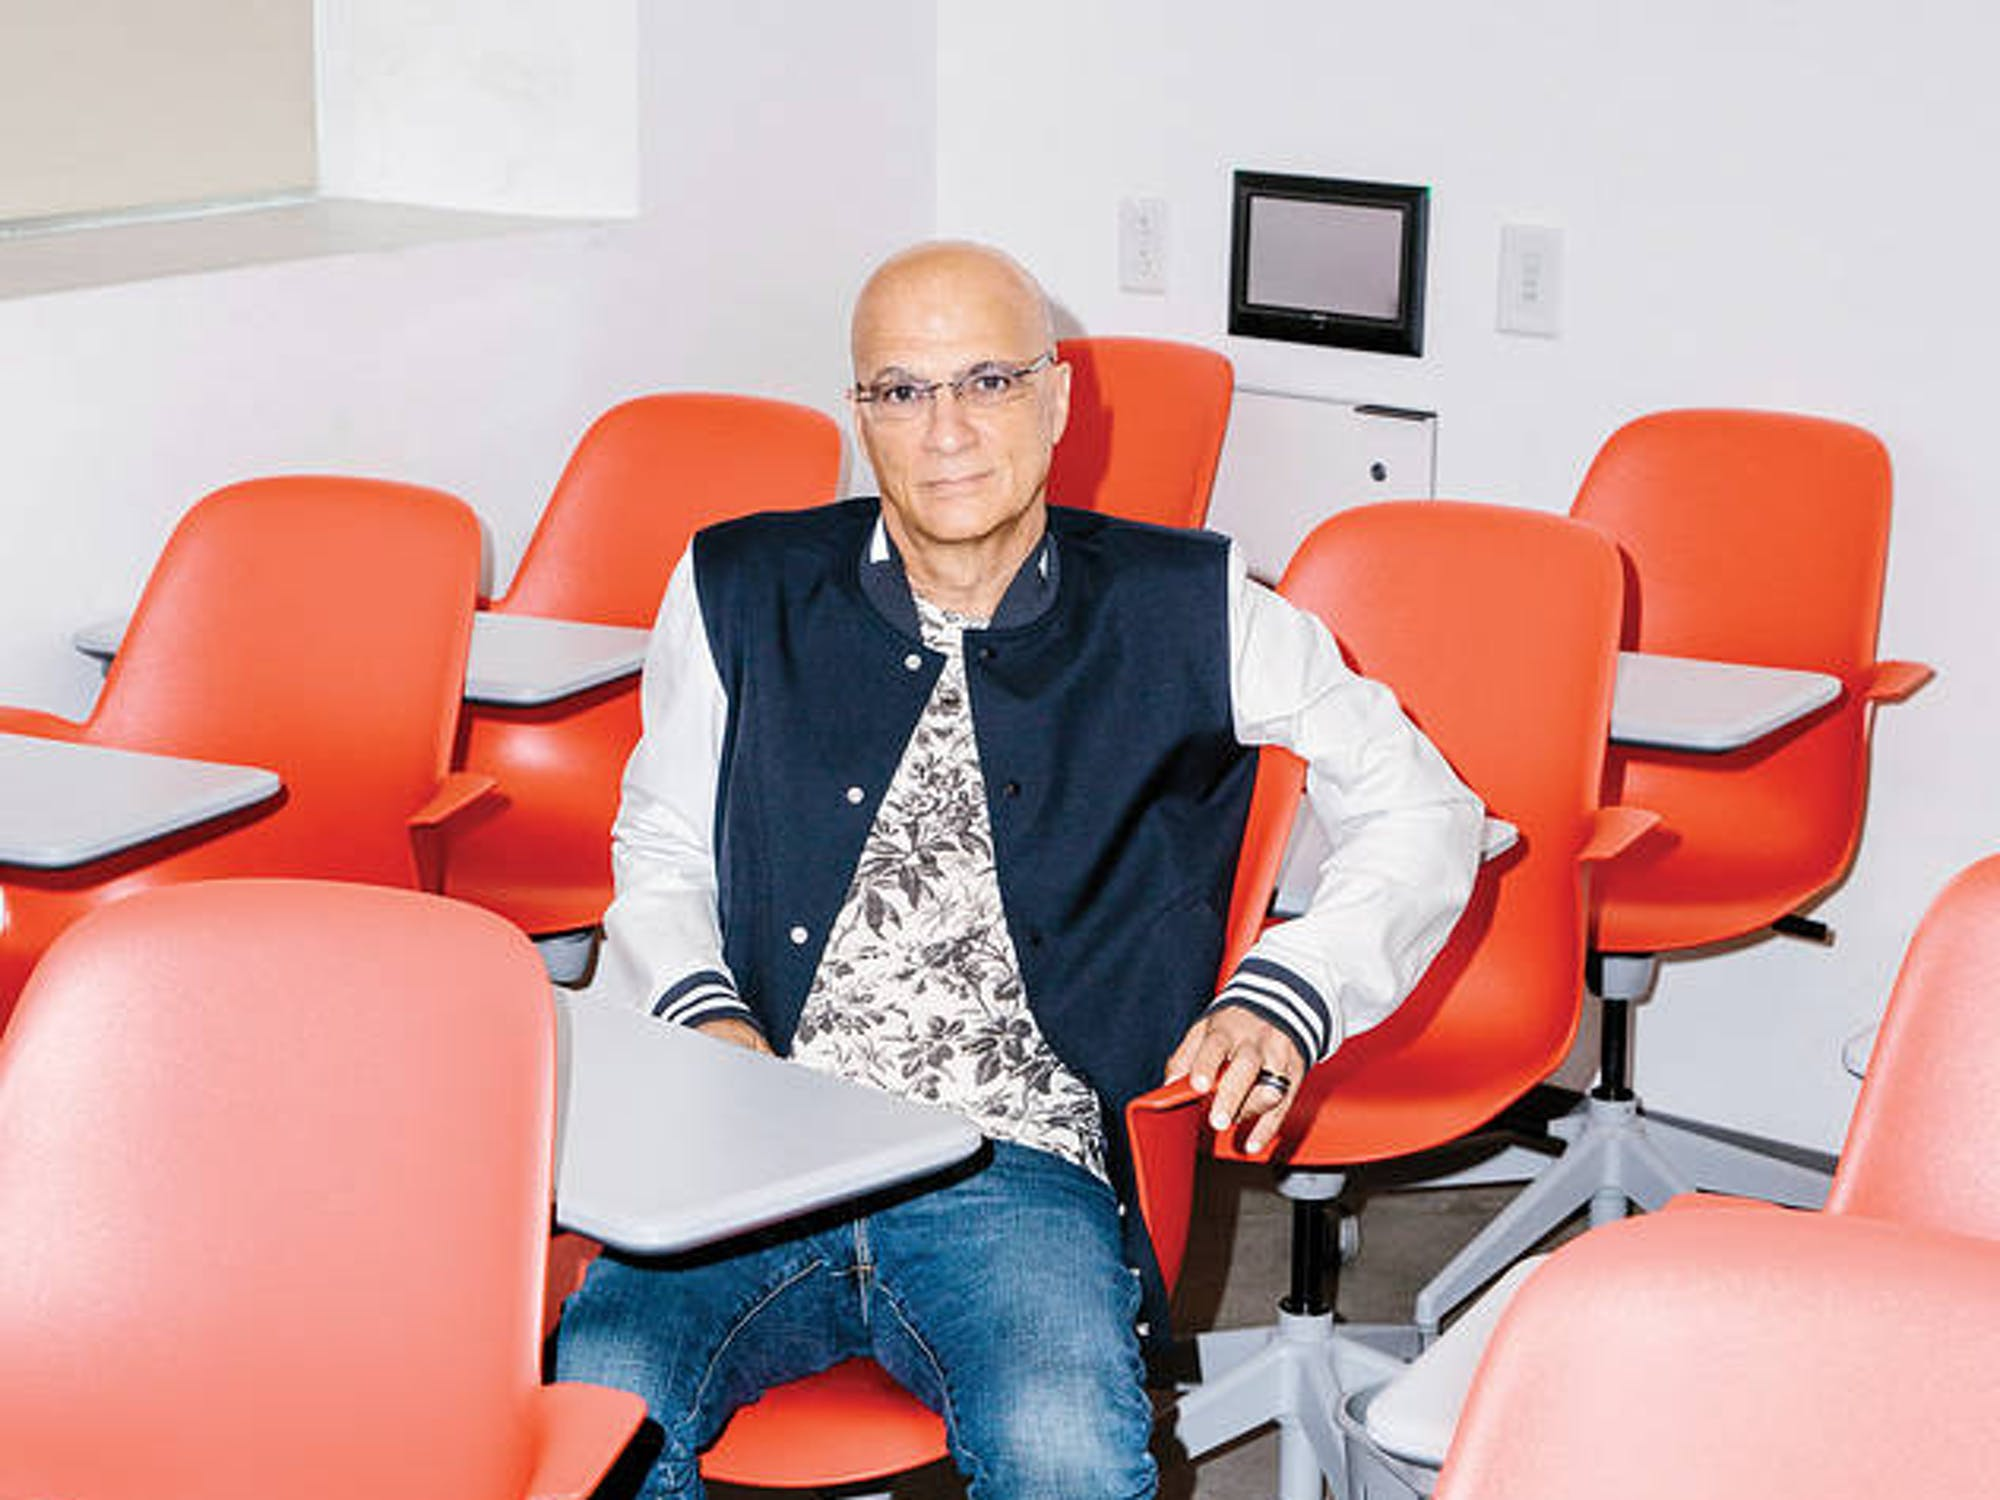 Jimmy Iovine sits on stylized red furniture